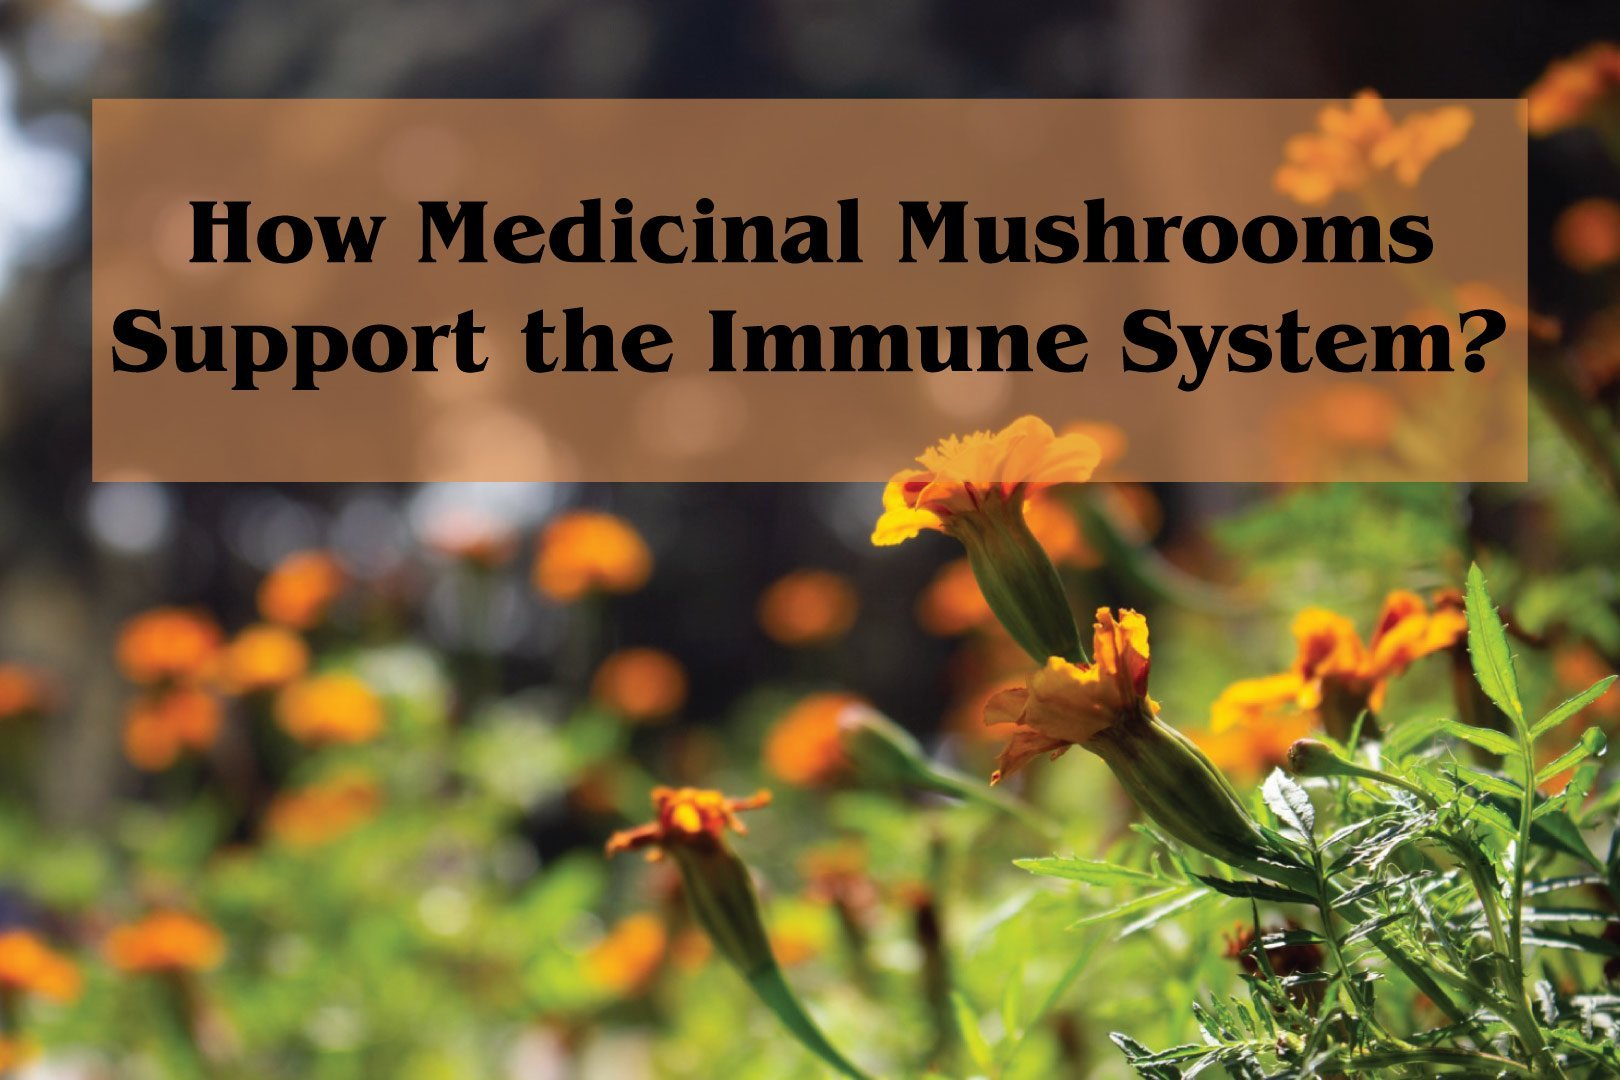 How-Do-Mushrooms-Support-the-Immune-System